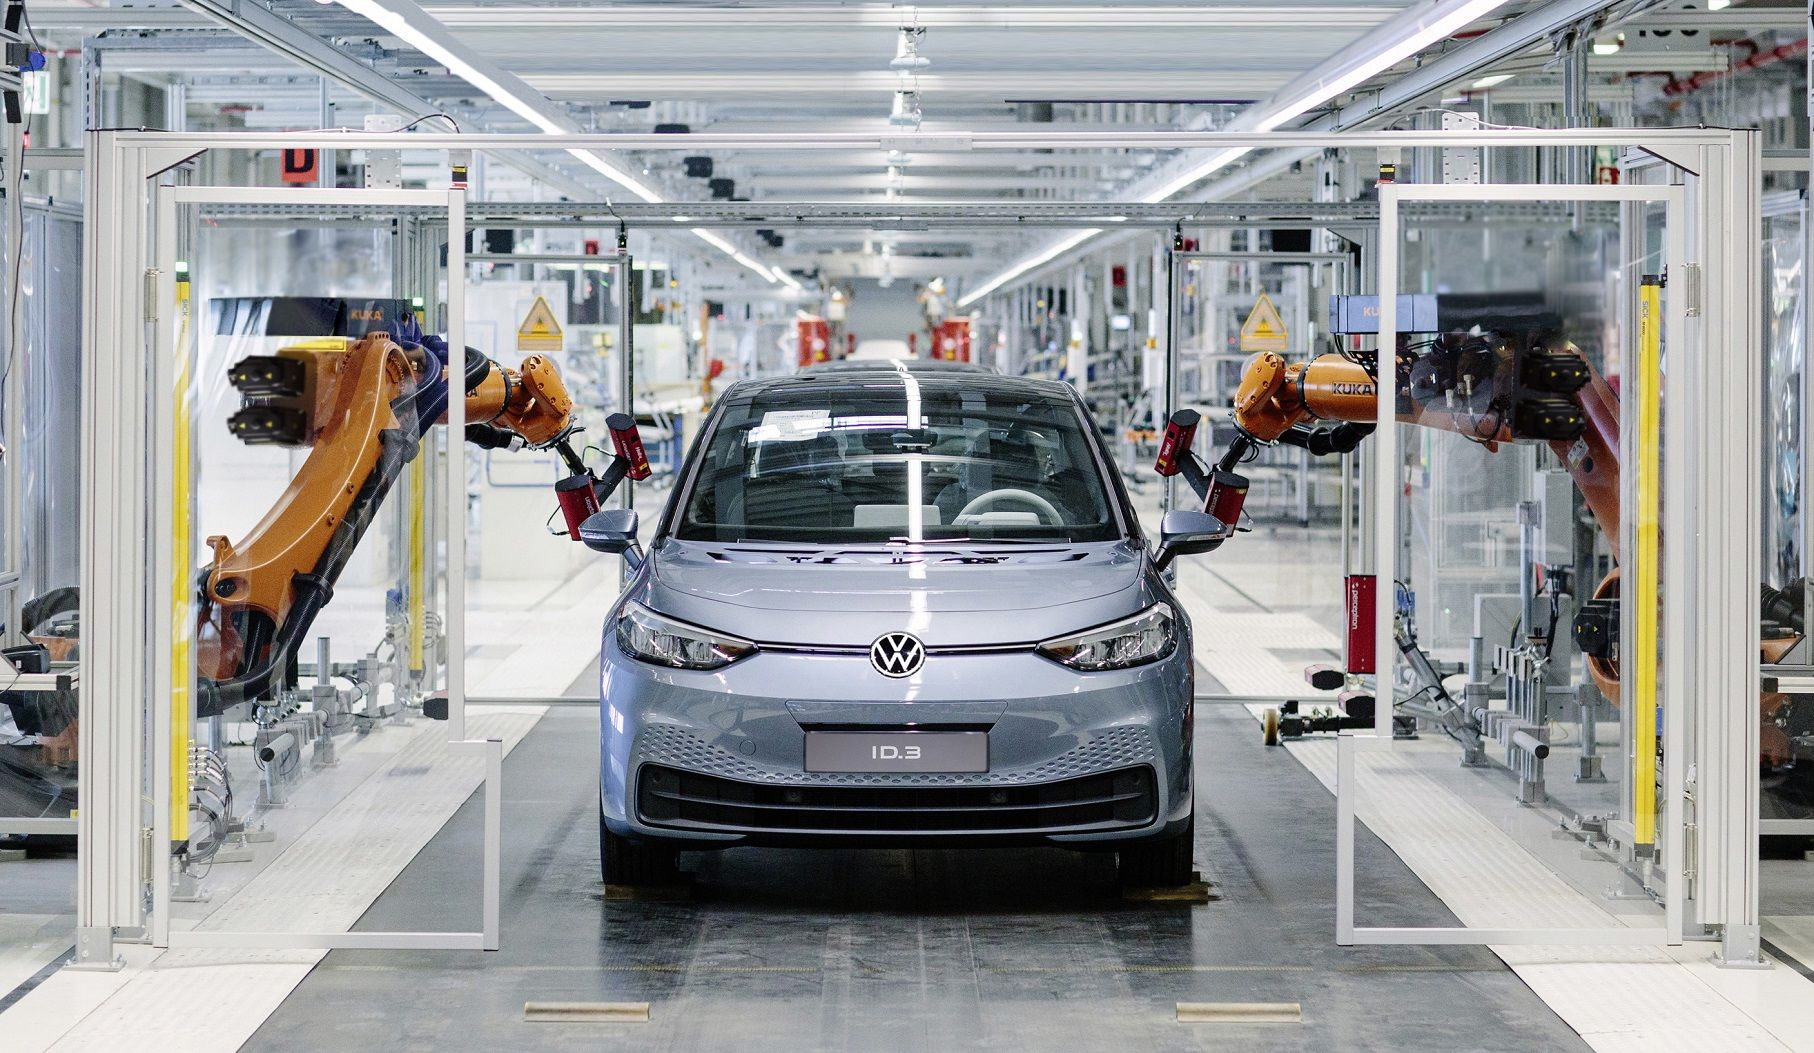 Production of Volkswagen's long-awaited ID.3 electric vehicle is now underway. (Credit: Volkswagen)